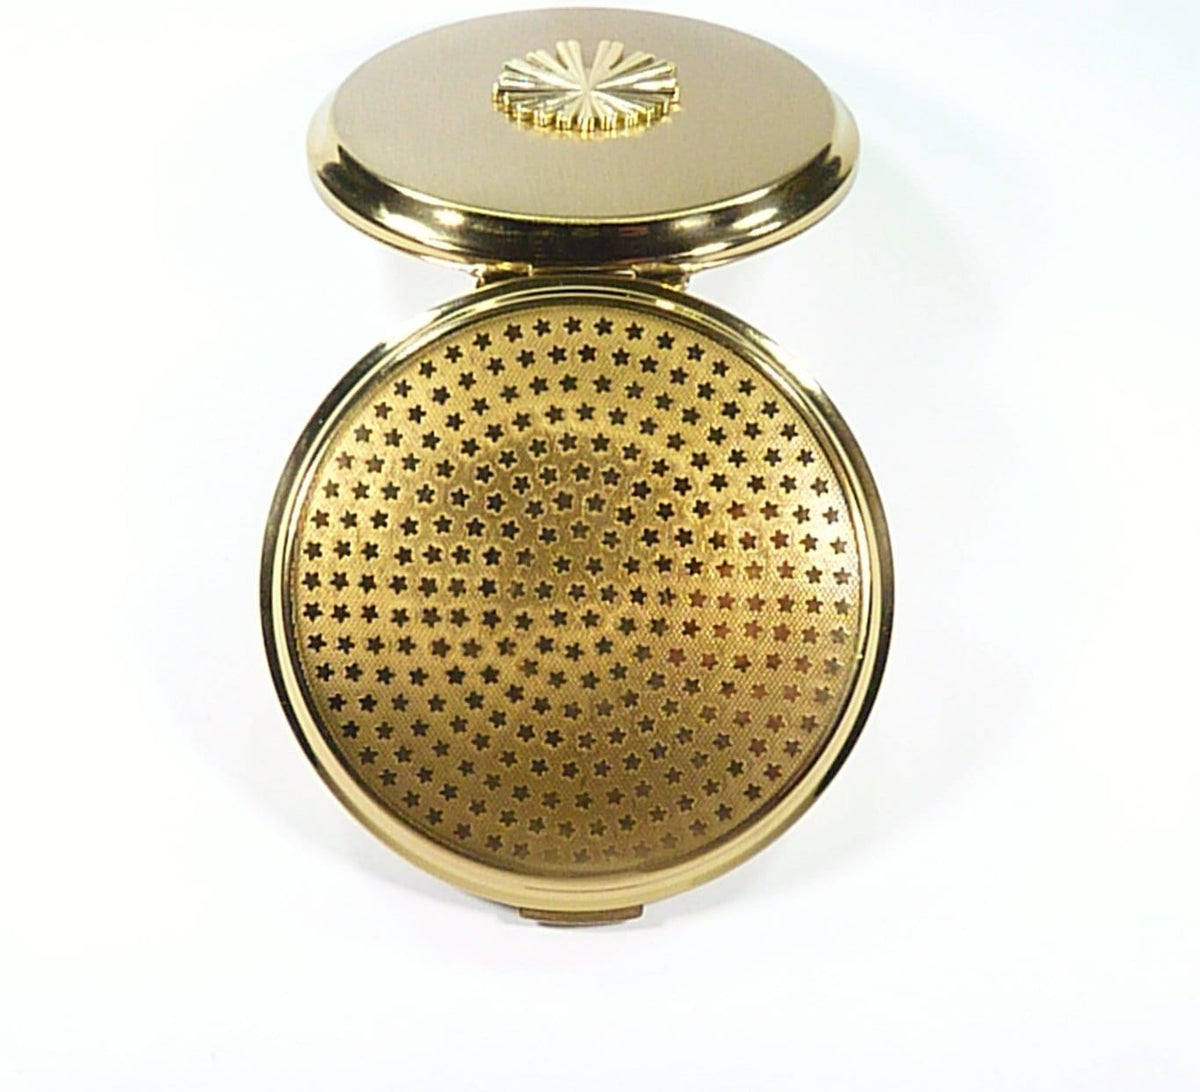 1950s Stratton Refillable Compact Case With And Mirror Gilt Motif